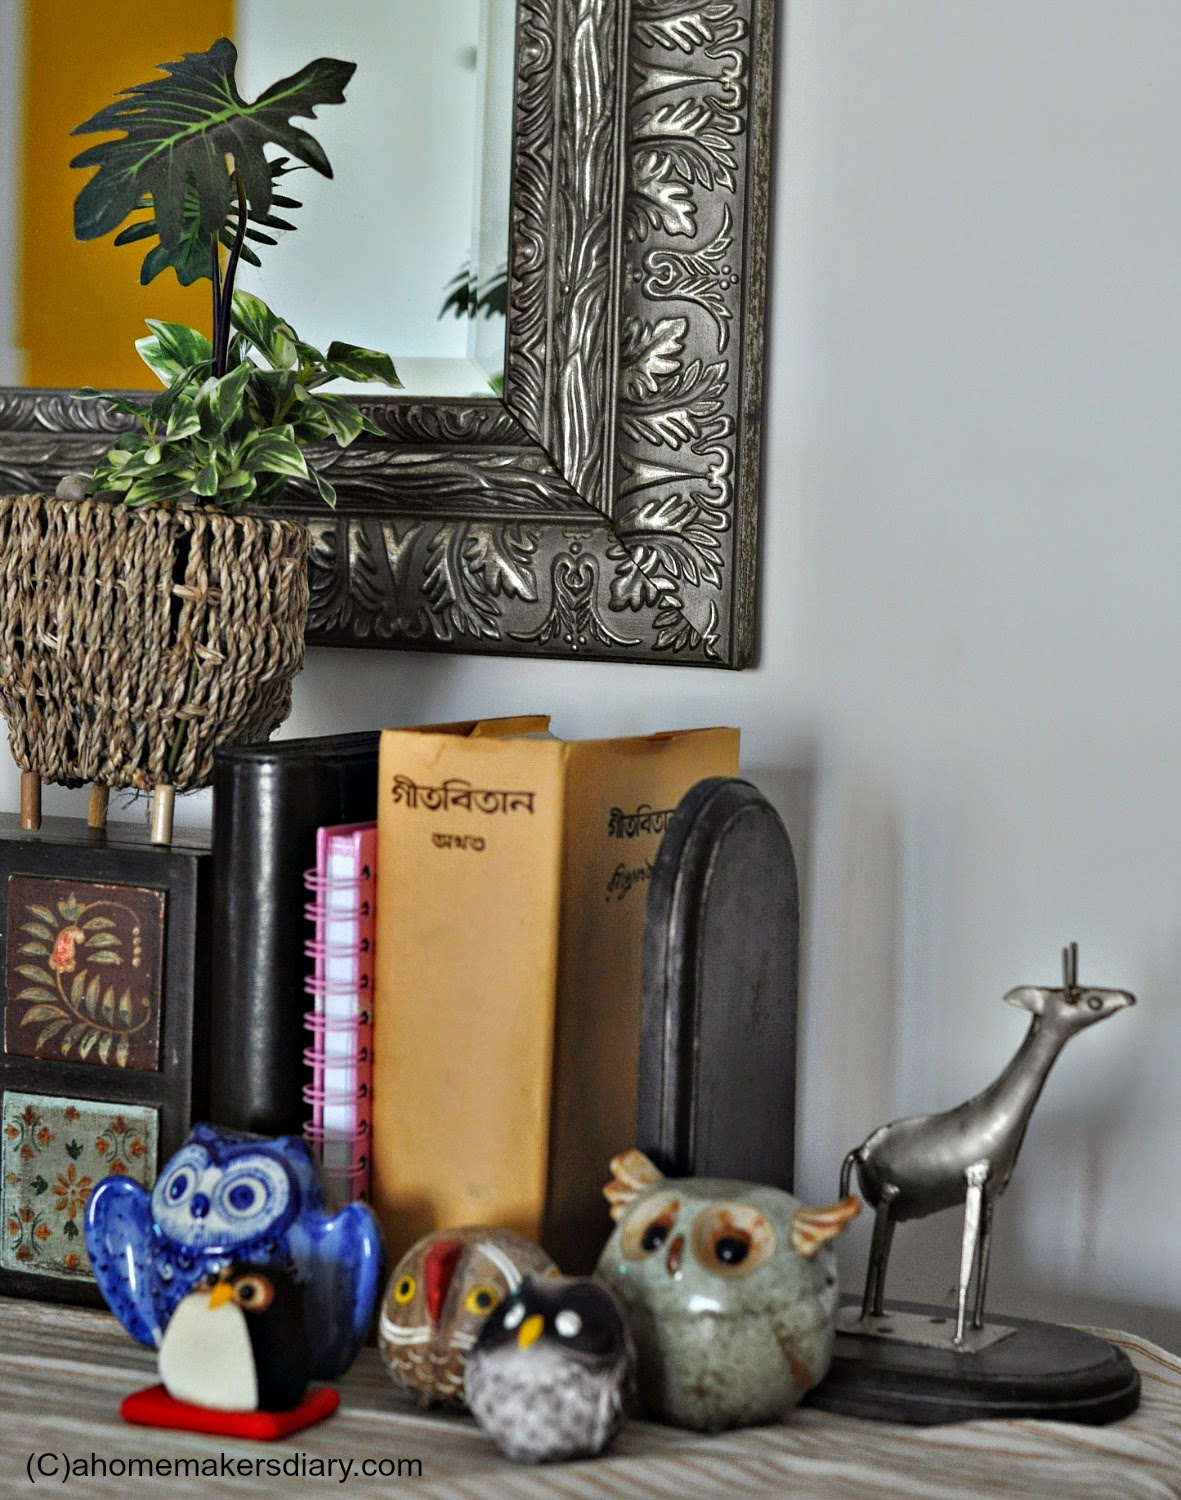 A Homemaker's Diary: My Bengali Home